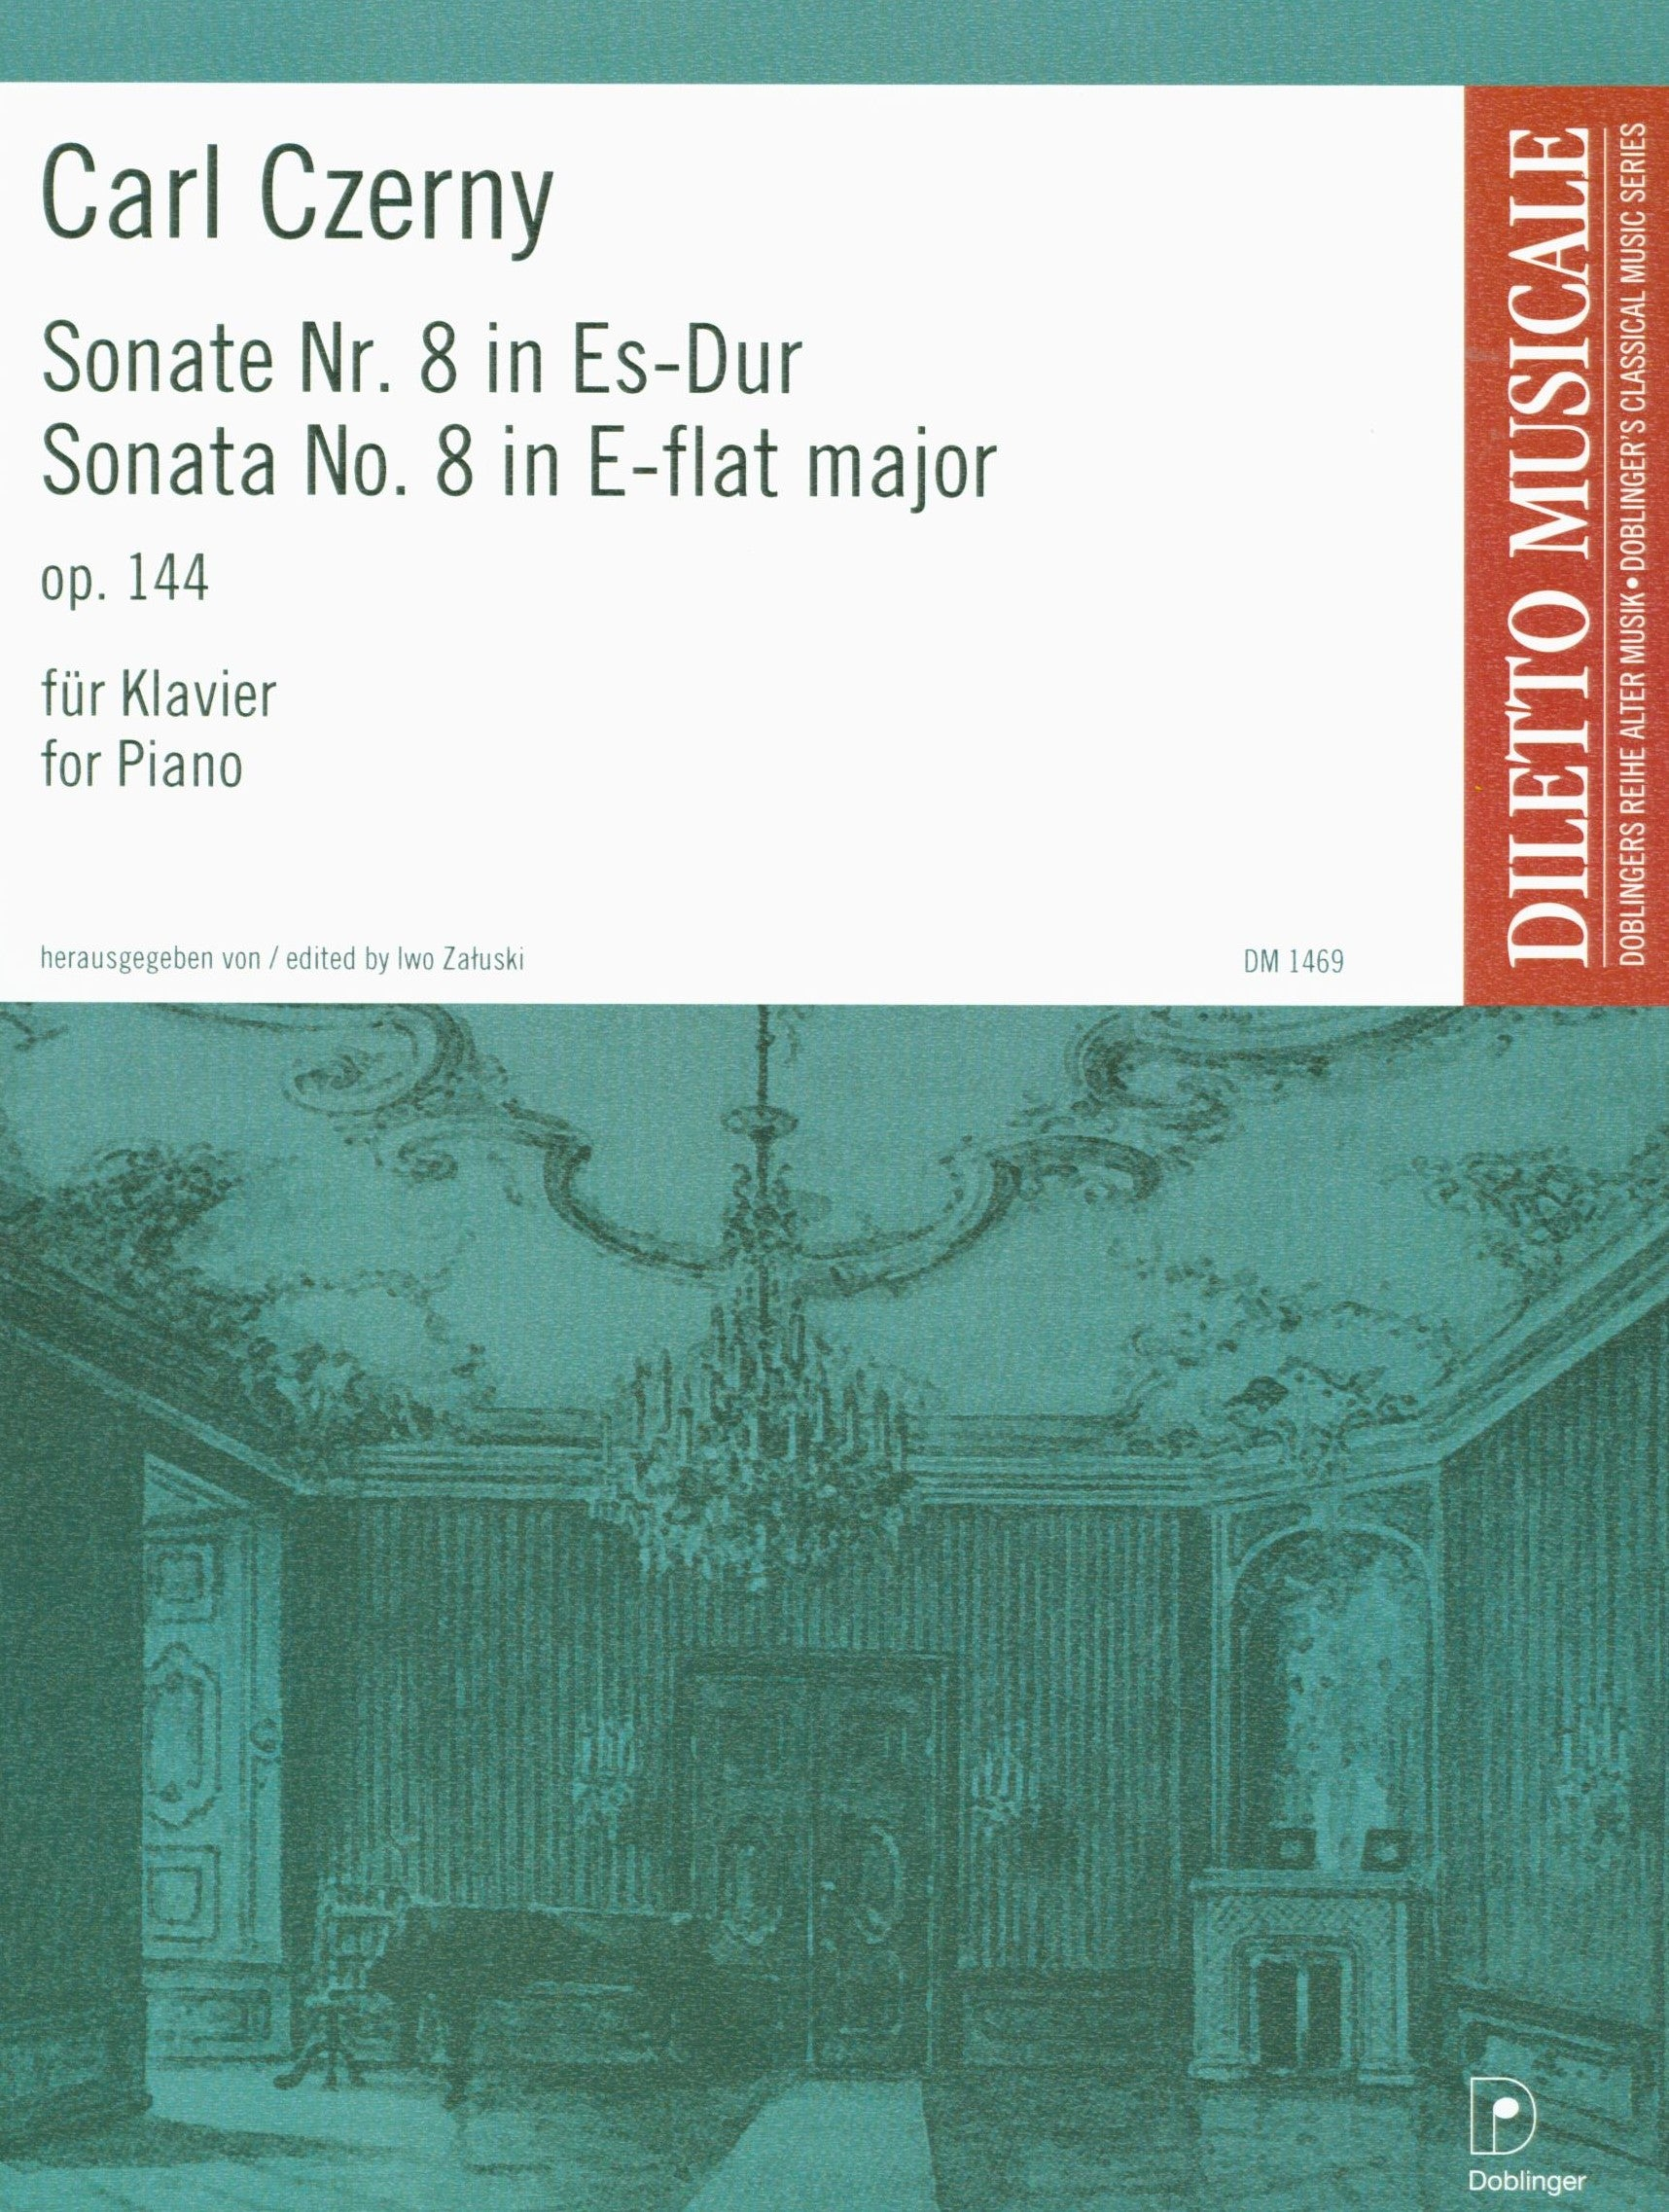 Czerny: Piano Sonata No. 8 in E-flat Major, Op. 144